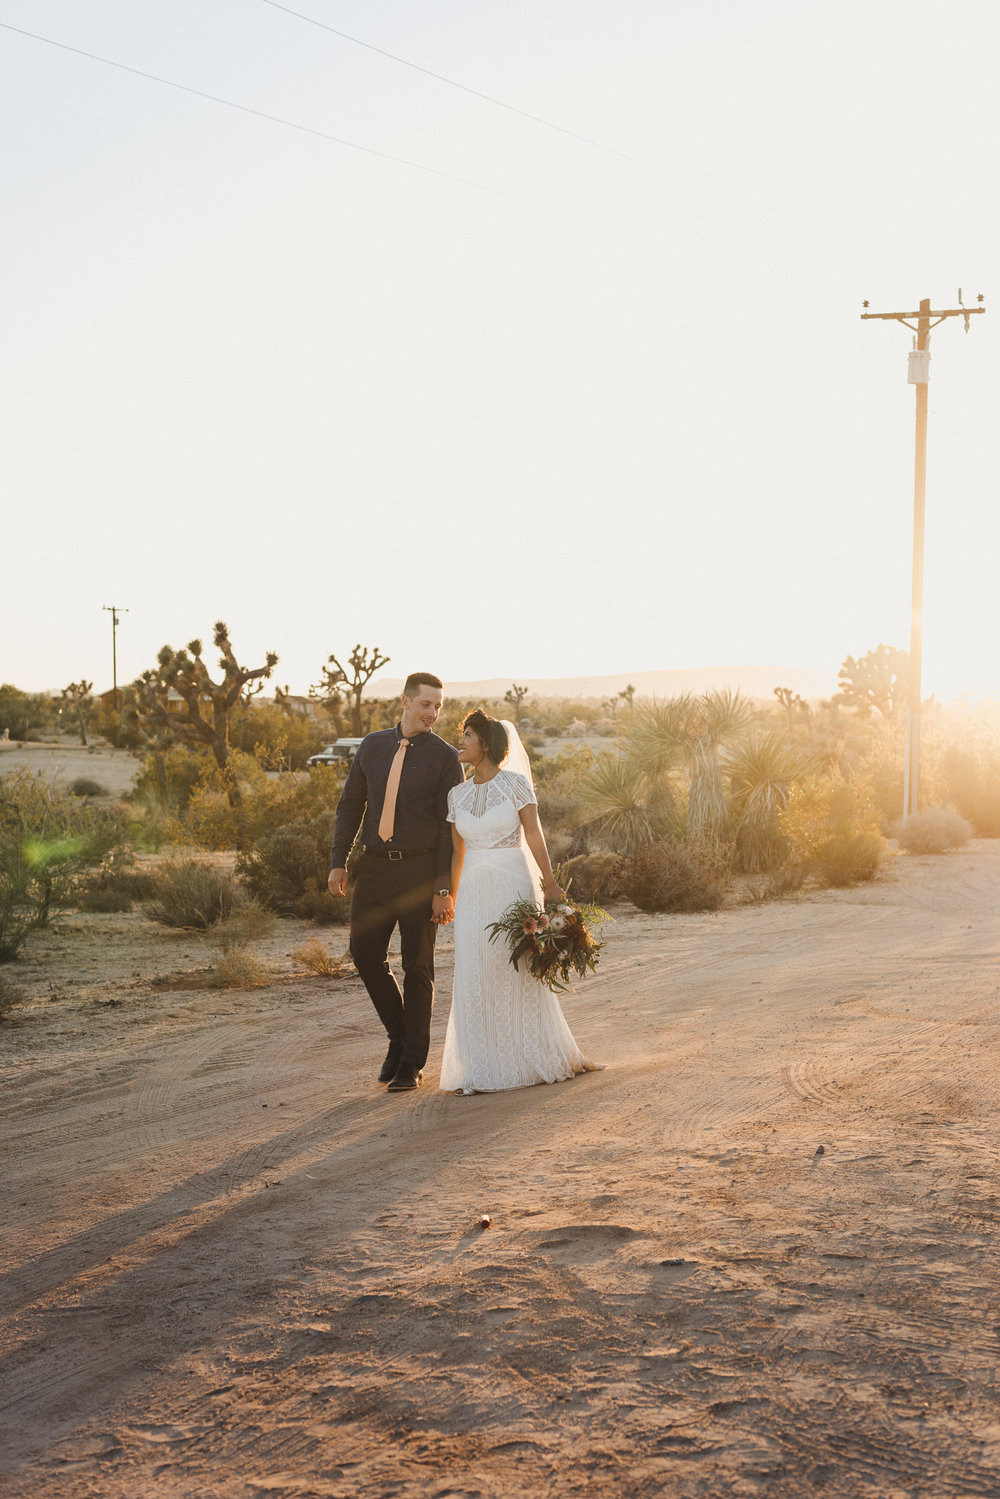 sJ + N - Joshua Tree, CA - 08 Bride + Groom-38.jpg